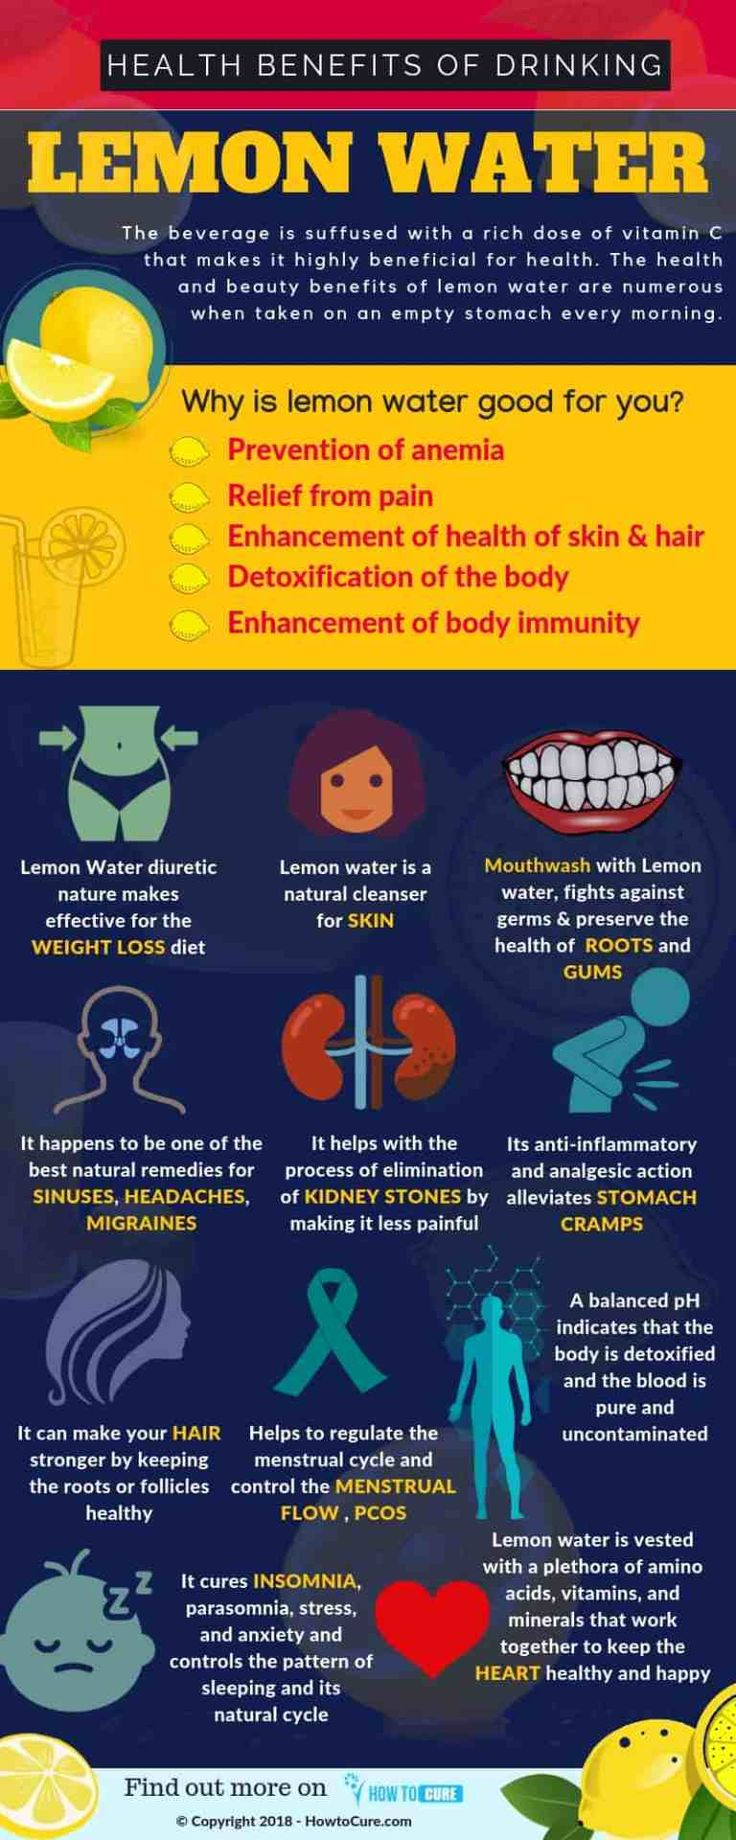 10 Exceptional Benefits Of Lemon Water on Health and Well Being